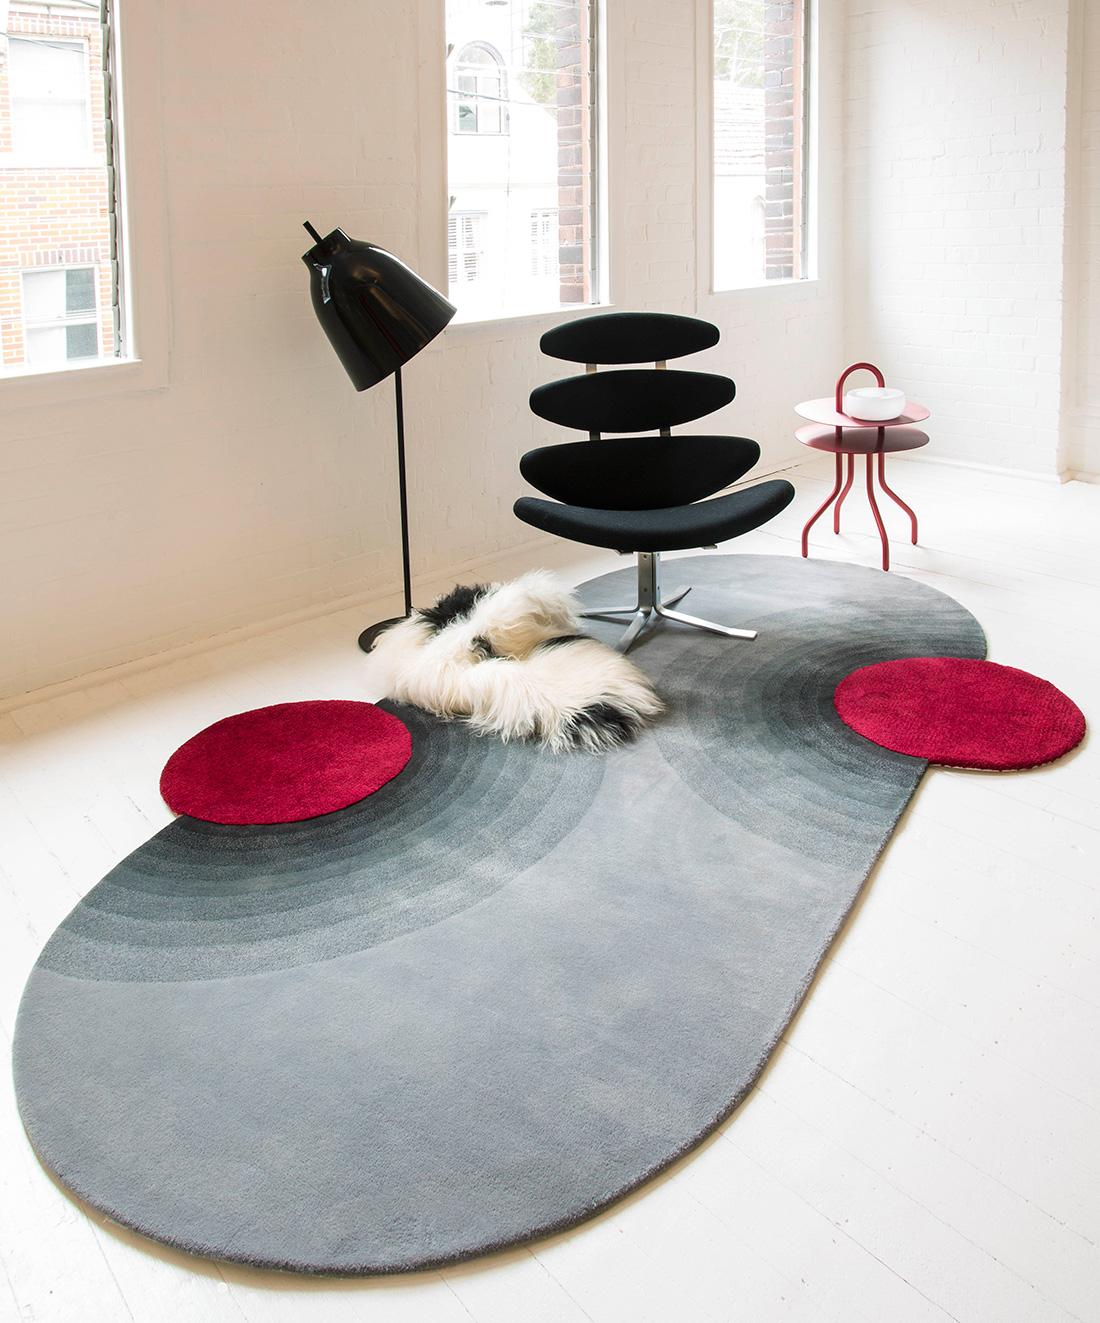 MINDSCAPE: Rugs To Keep In Mind - Indesignlive